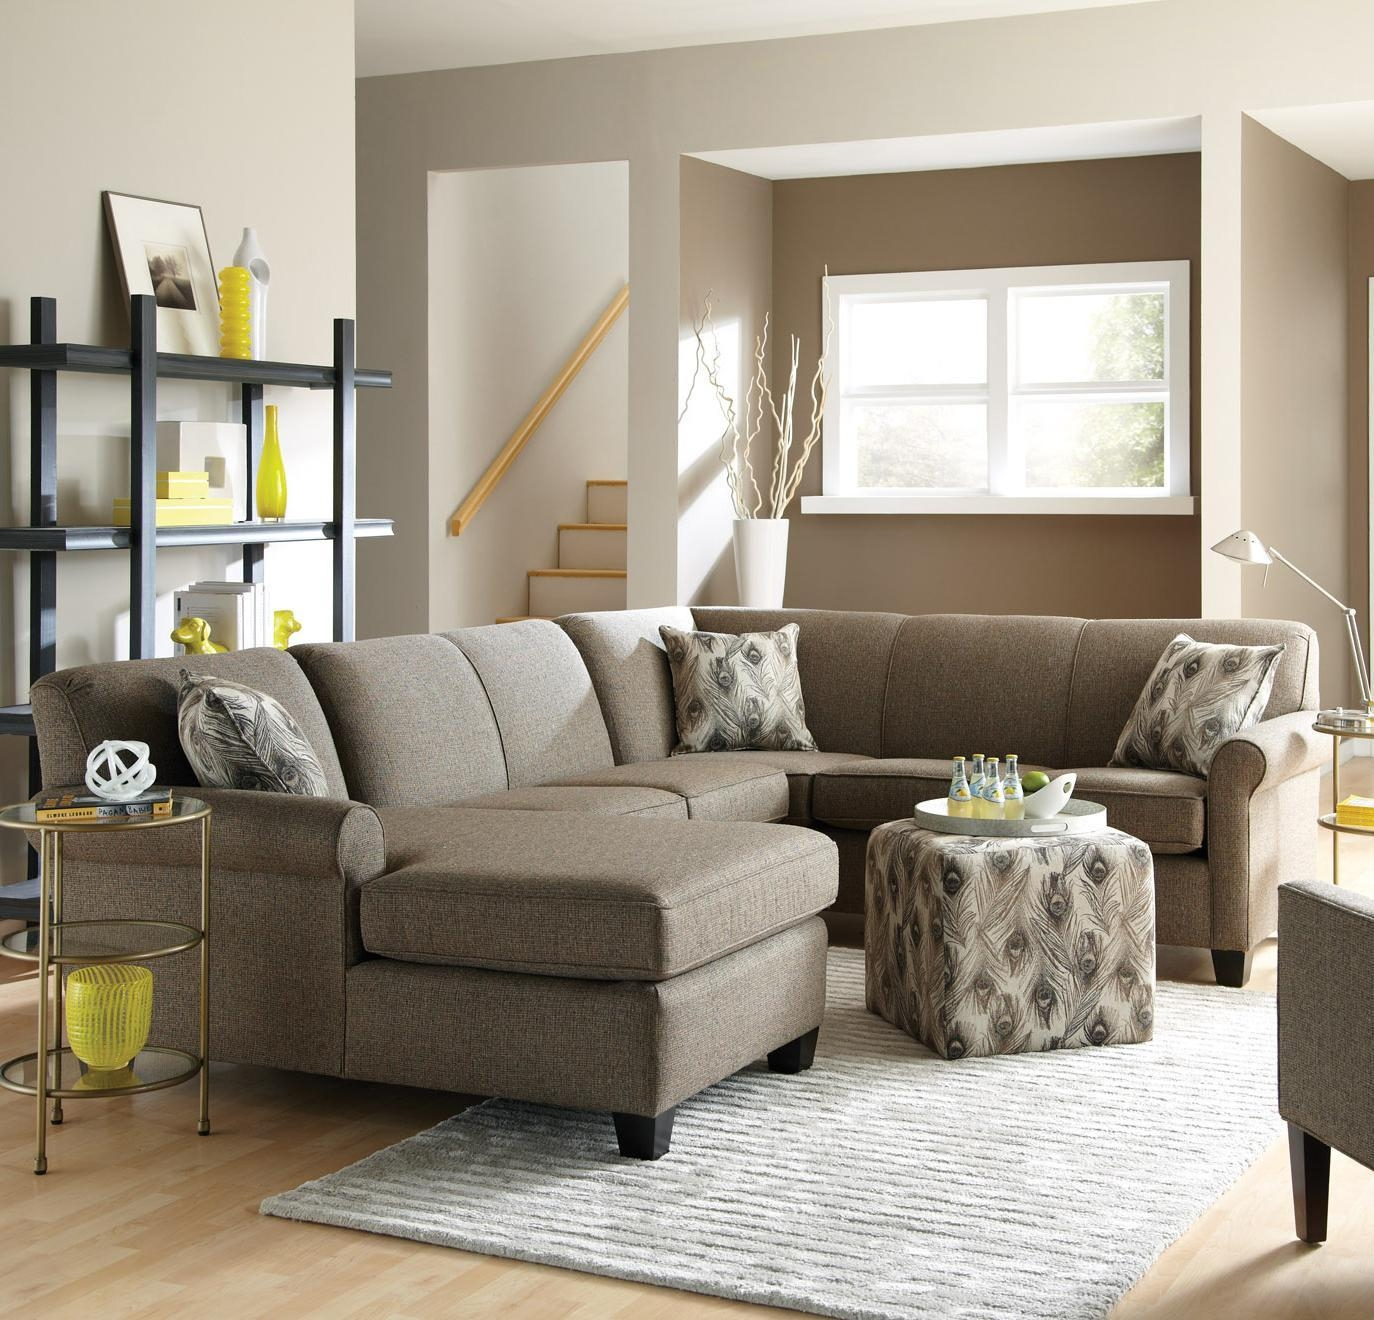 England Angie Long Sectional Sofa With Chaise – Ahfa – Sofa In Long Sectional Sofa With Chaise (View 18 of 20)